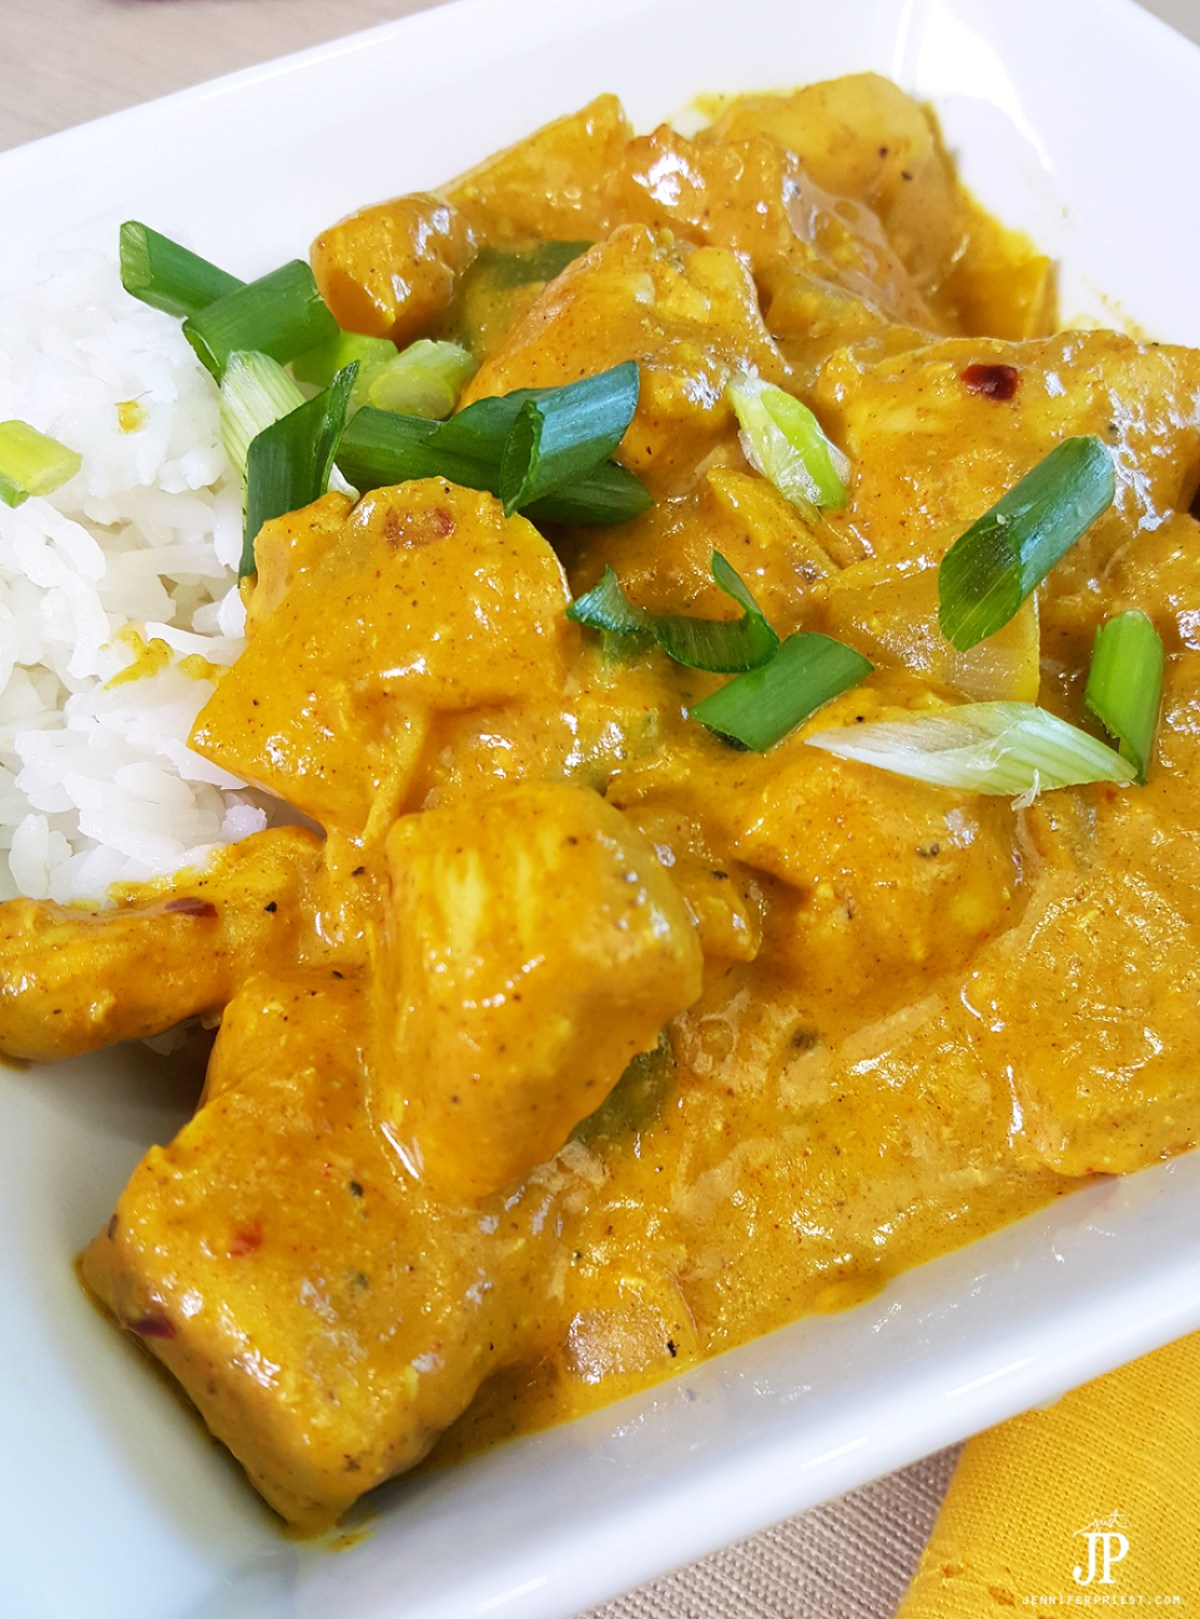 The best homemade chicken curry recipe - lower fat with Jif Peanut Powder versus peanut butter.